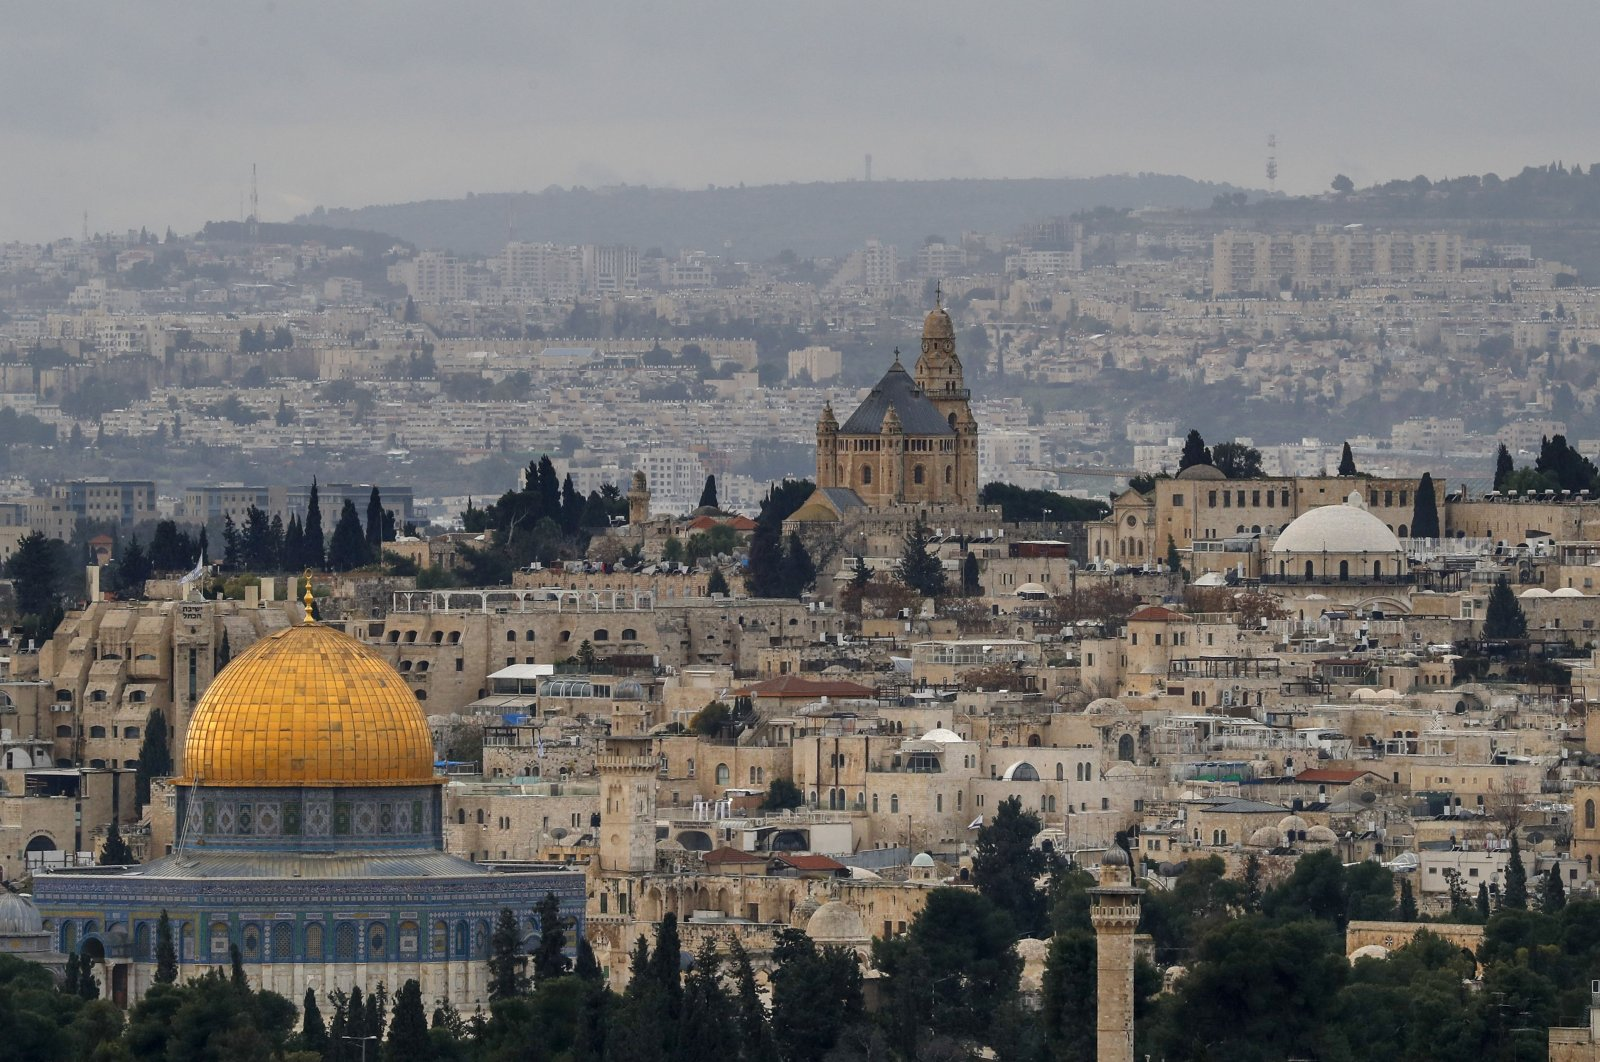 The Dome of the Rock (L), in the Al-Aqsa mosques compound and the Abbey of the Dormition (C) on Mount Zion, a Benedictine Basilica, built over the site where the Virgin Mary is said to have fallen asleep for the last time, in the Old City of Jerusalem, Jan. 15, 2021. (AFP Photo)